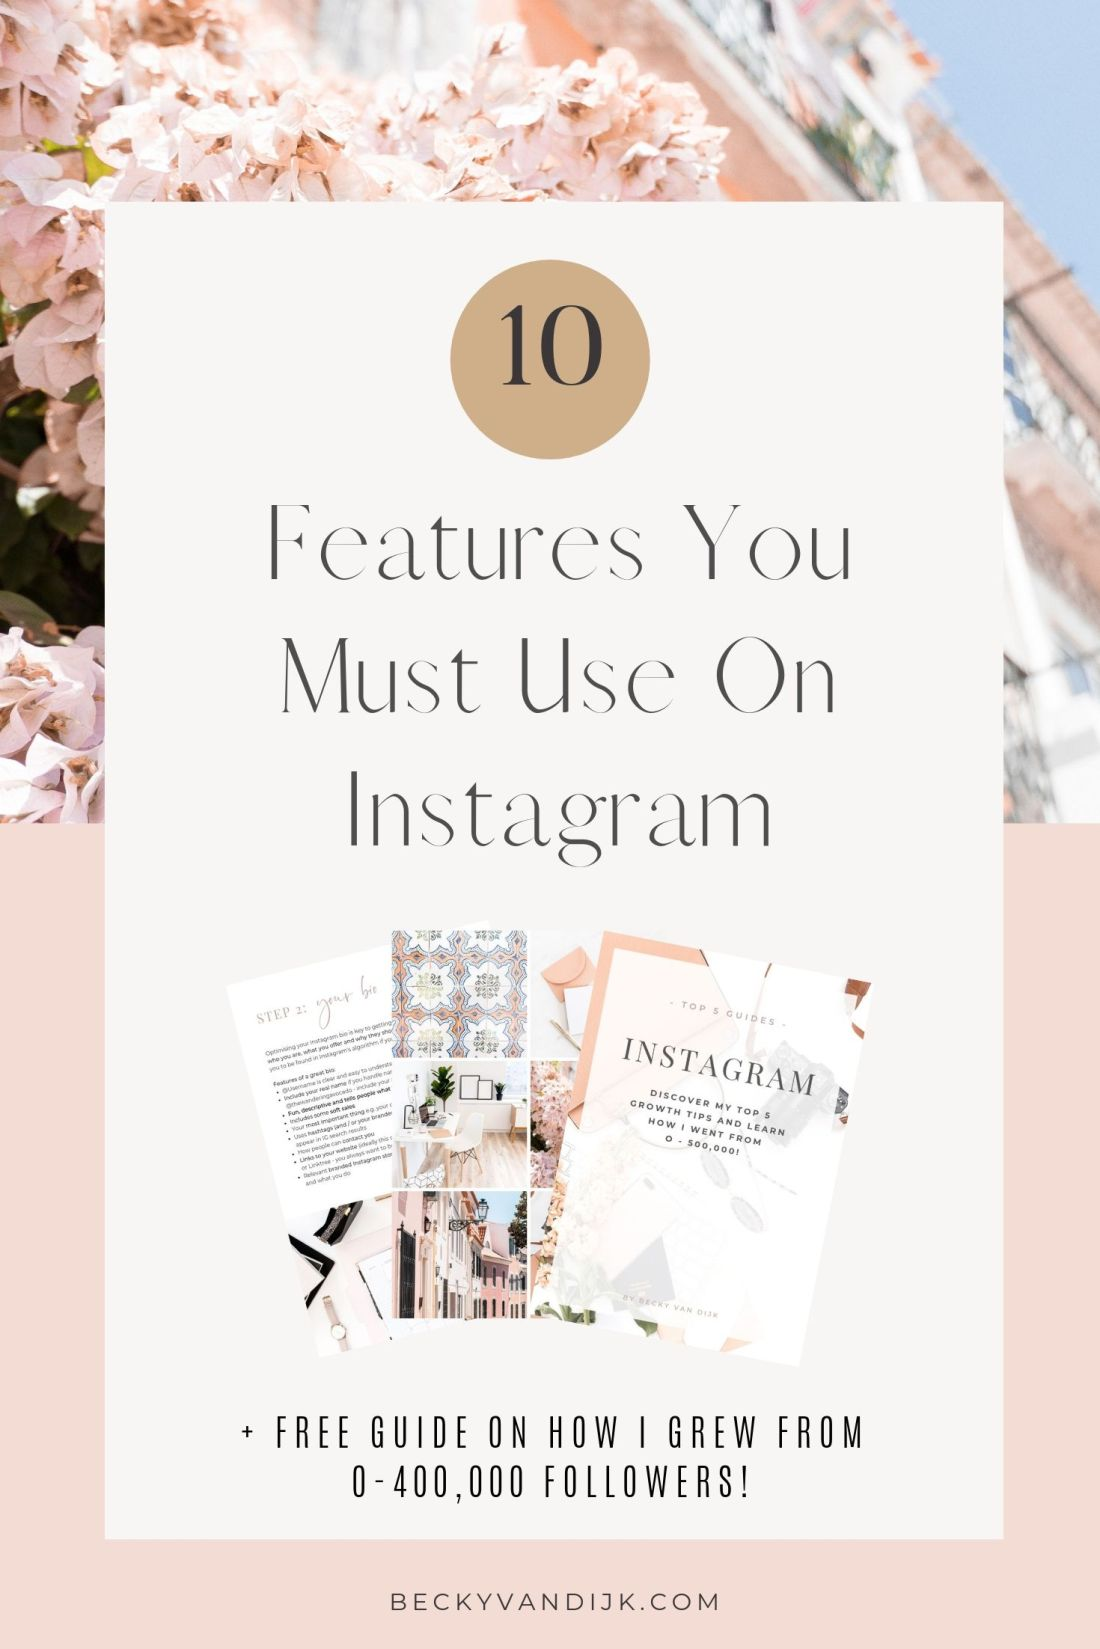 10 Instagram Features You Aren't Using - But Should! - Becky